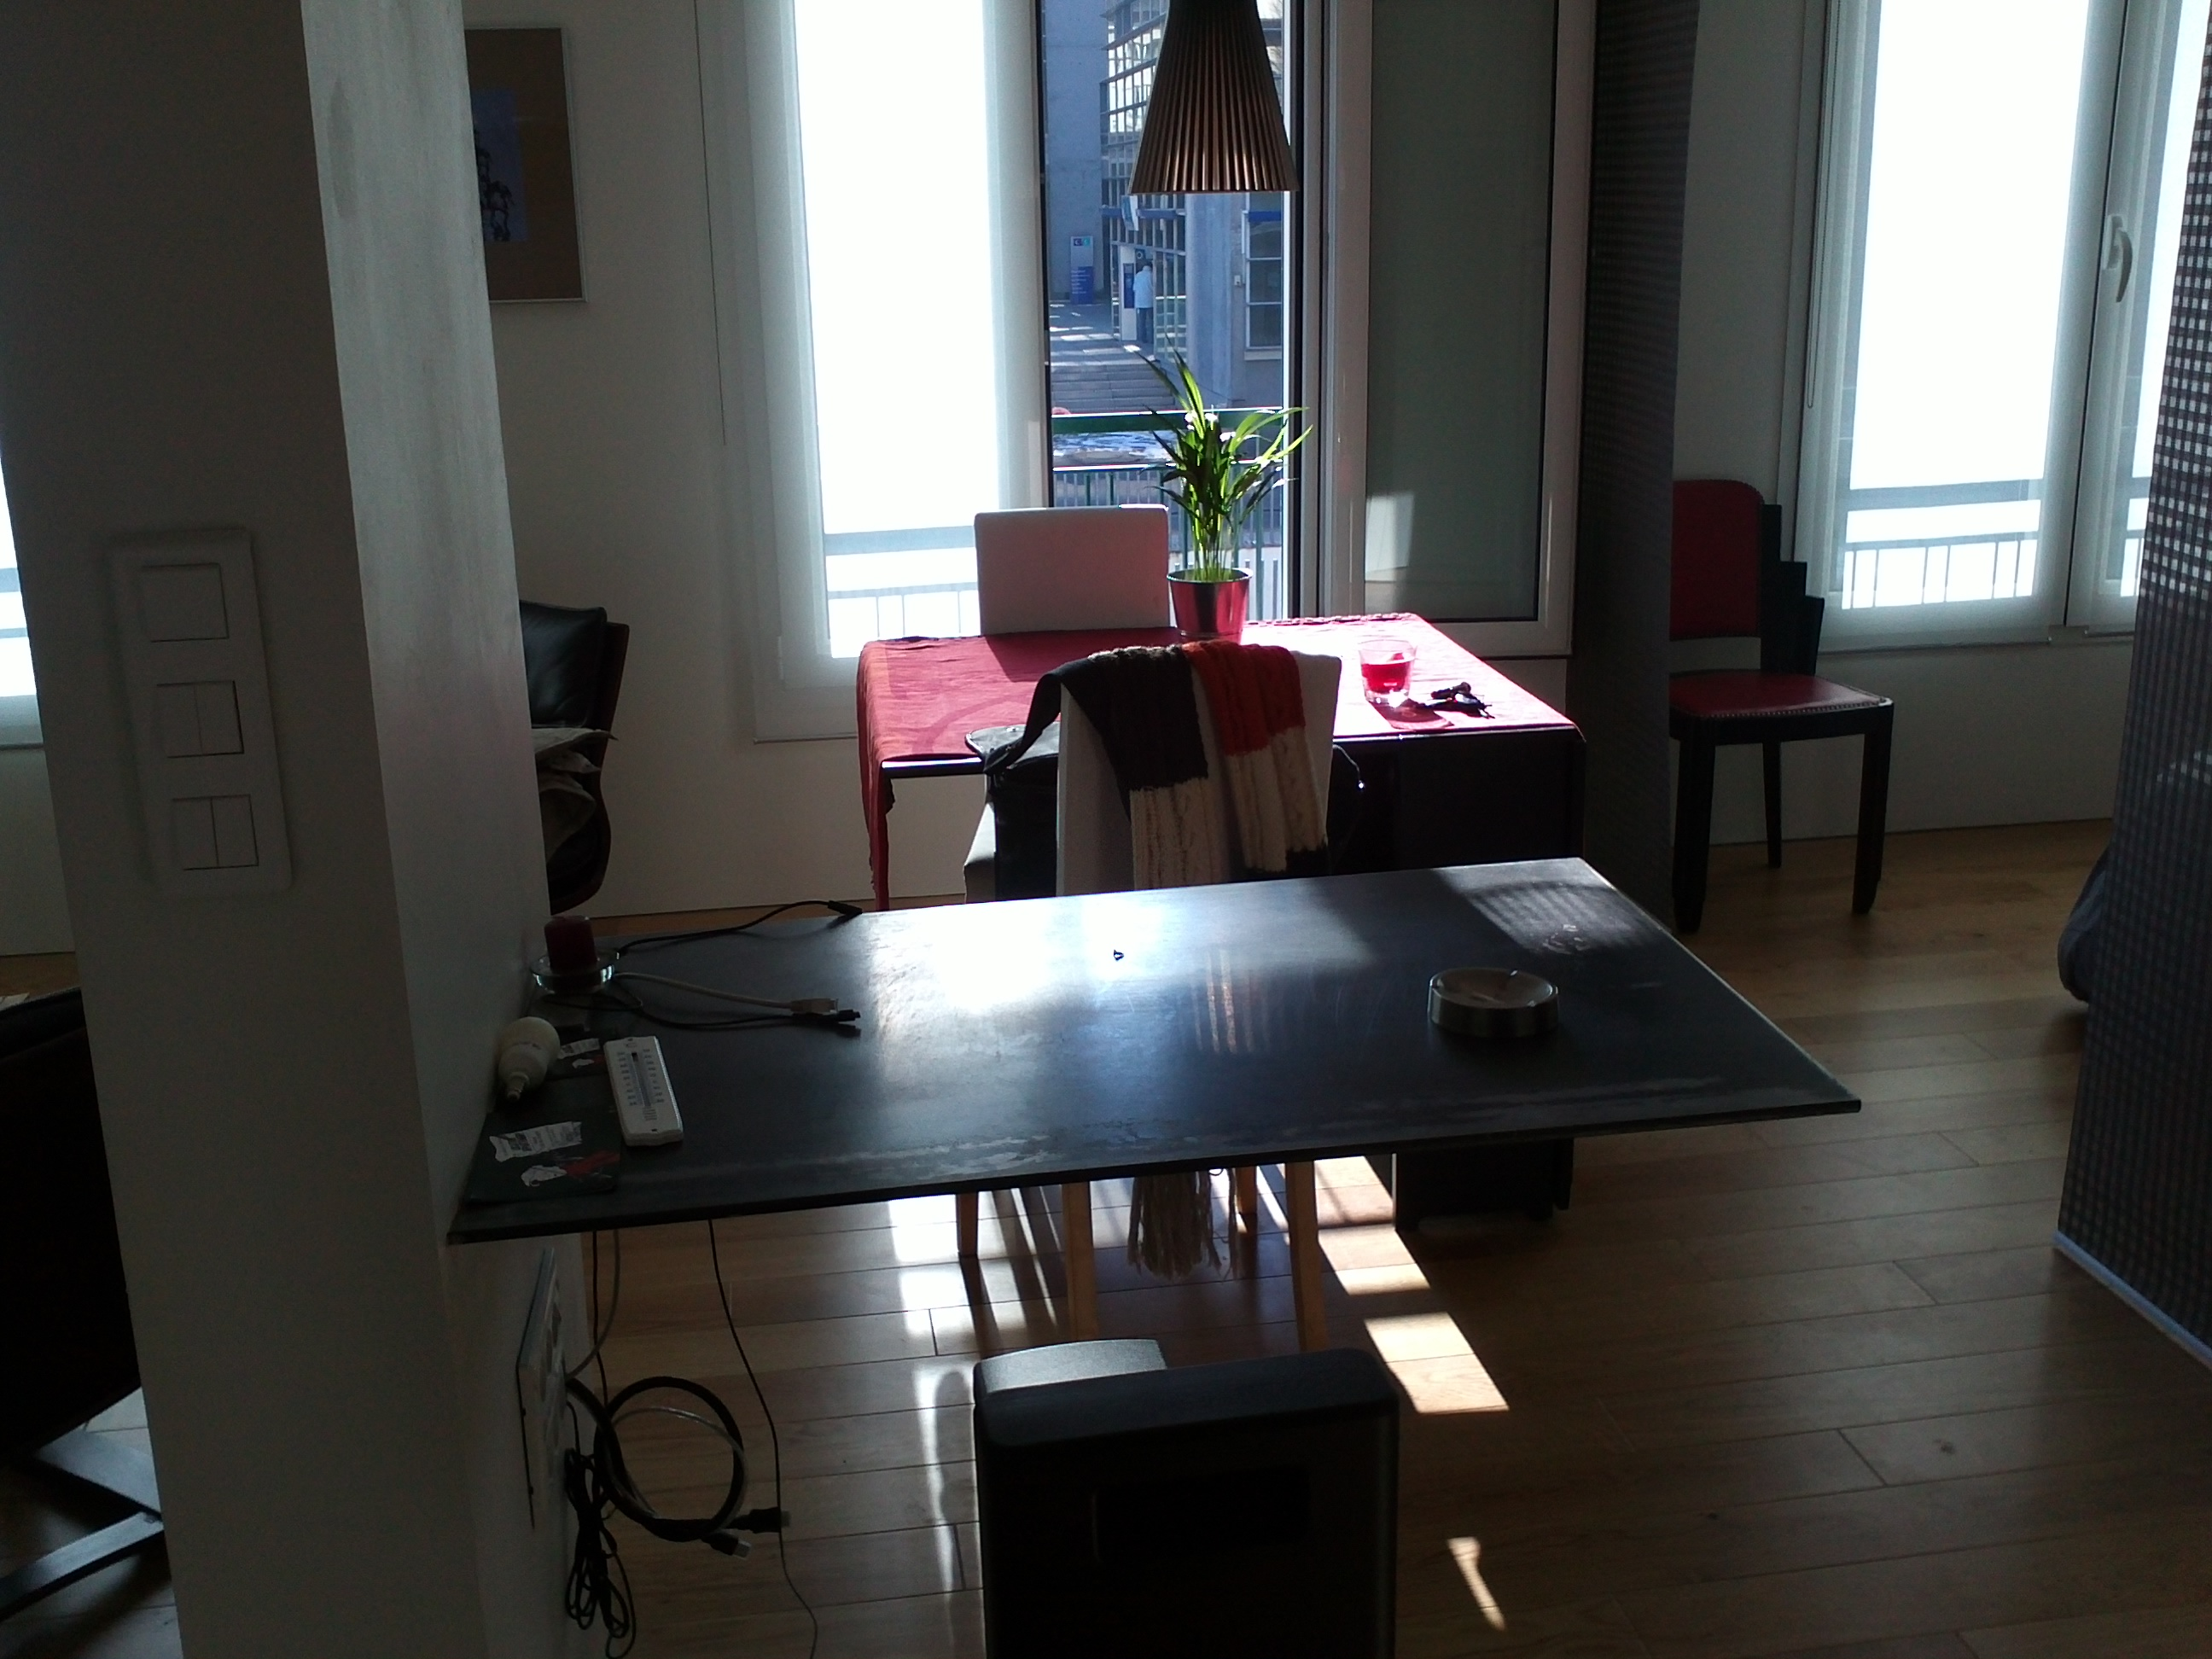 APPARTEMENT LE BEL'OUVRAGE-Bel-Ouvrage-Nantes